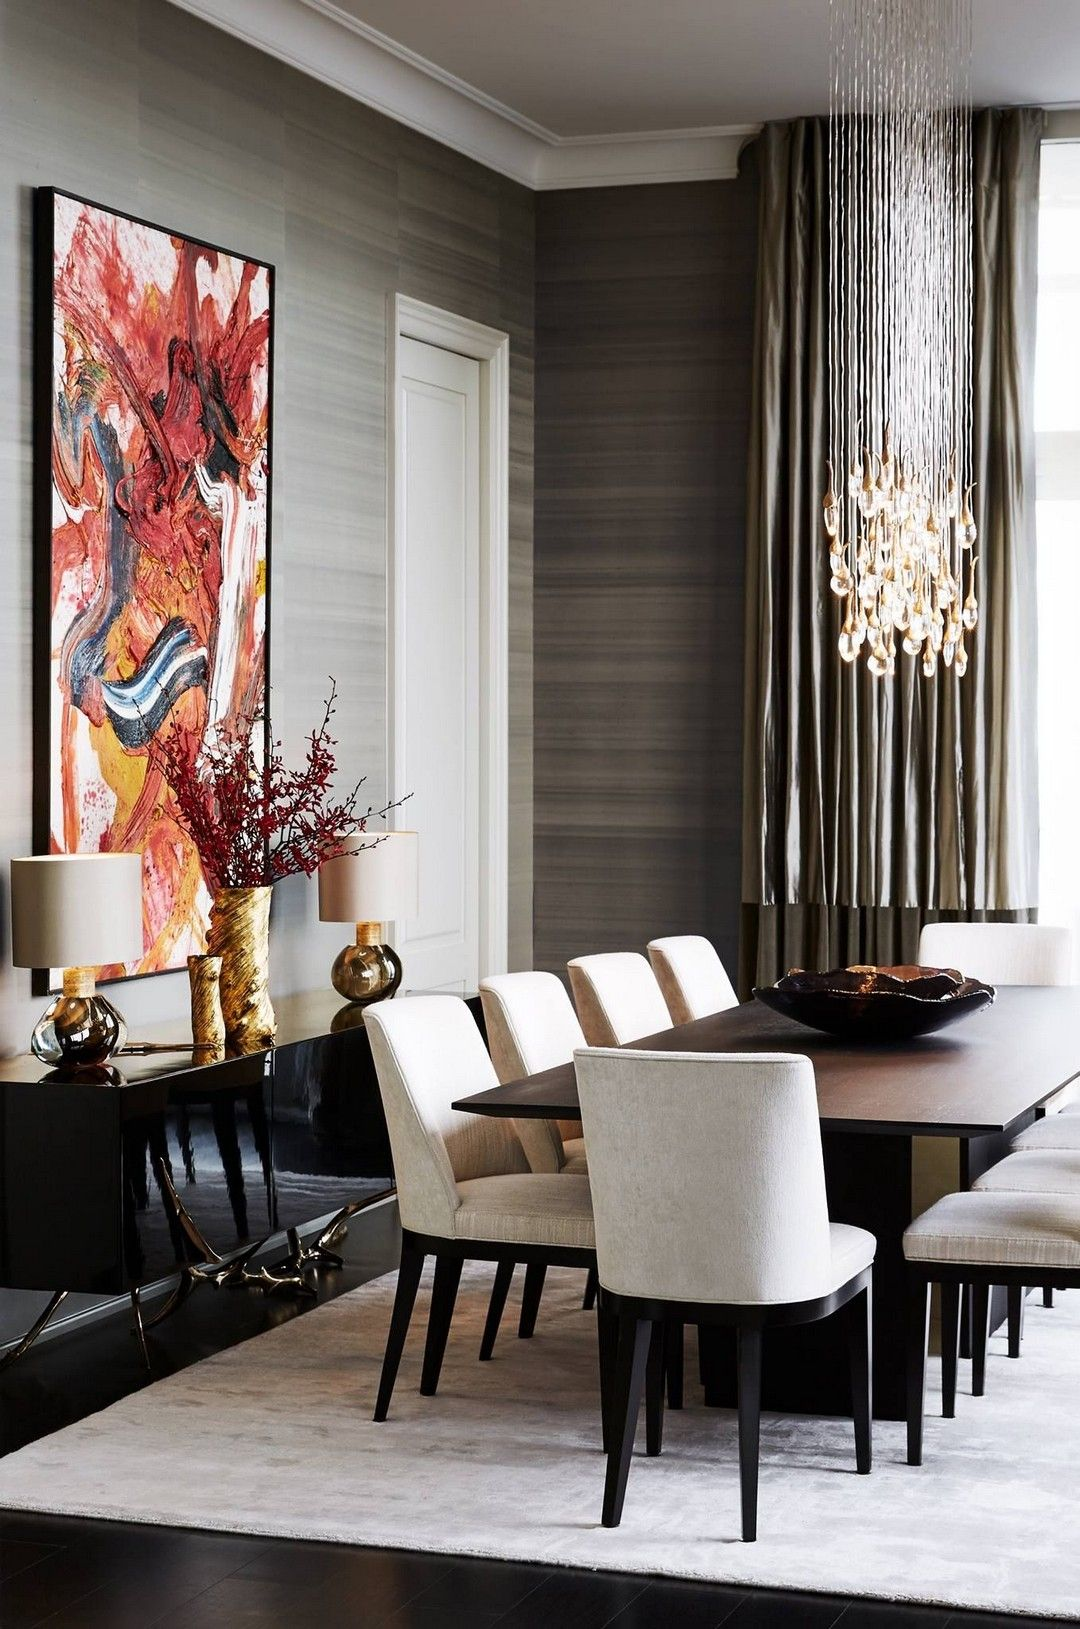 40 Modern Dining Room Ideas That Are Simply Charming images